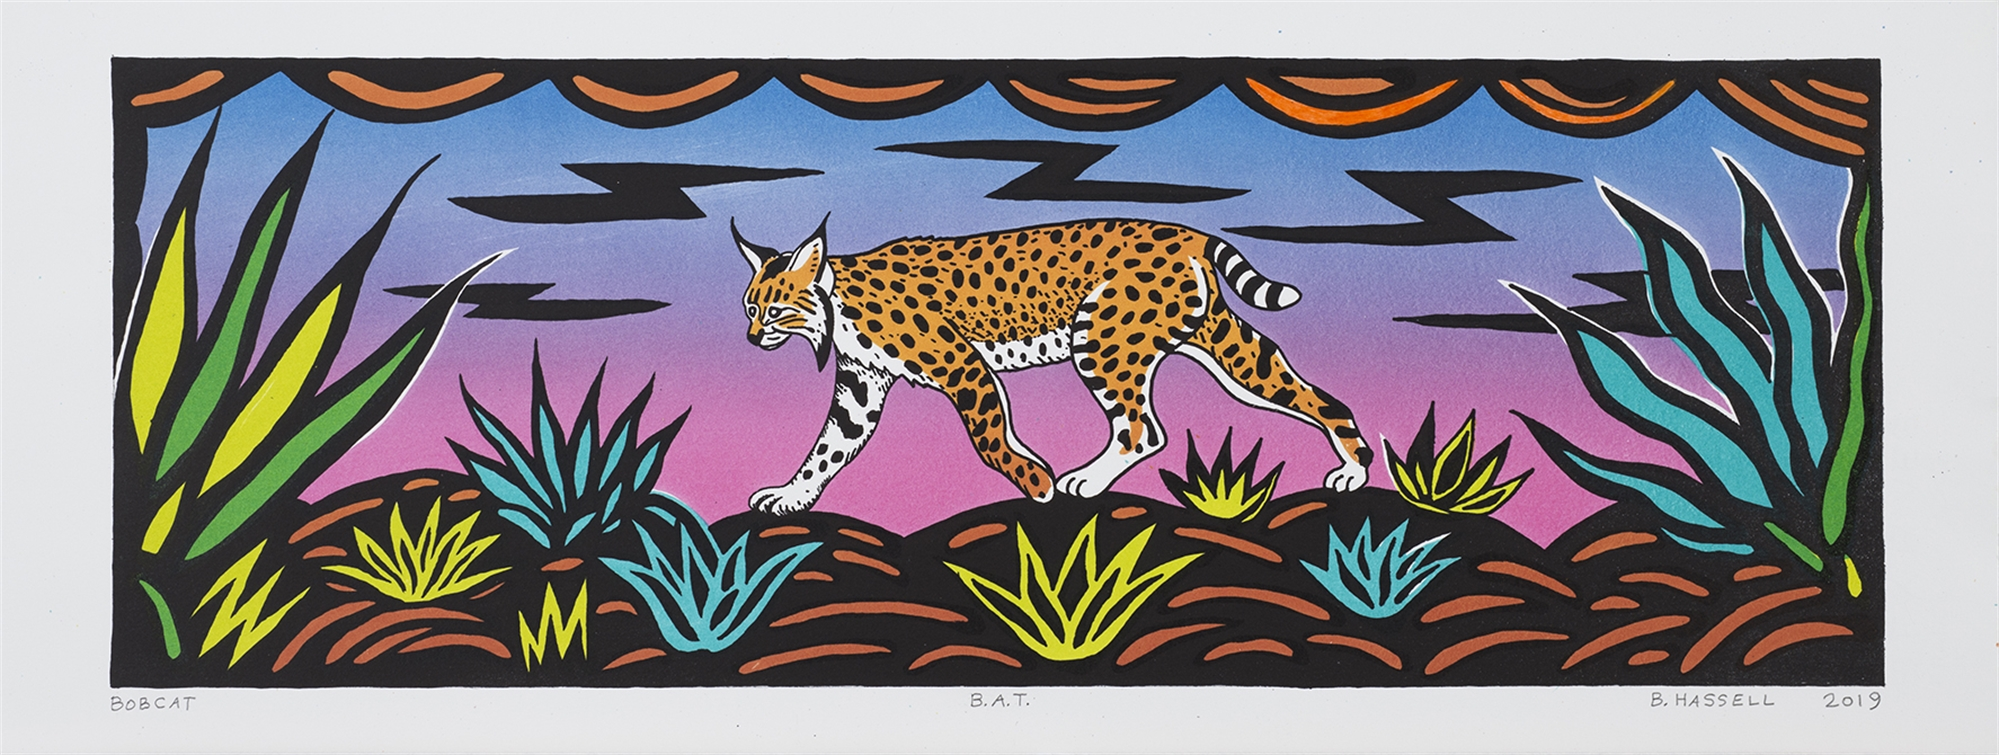 Bobcat by Billy Hassell